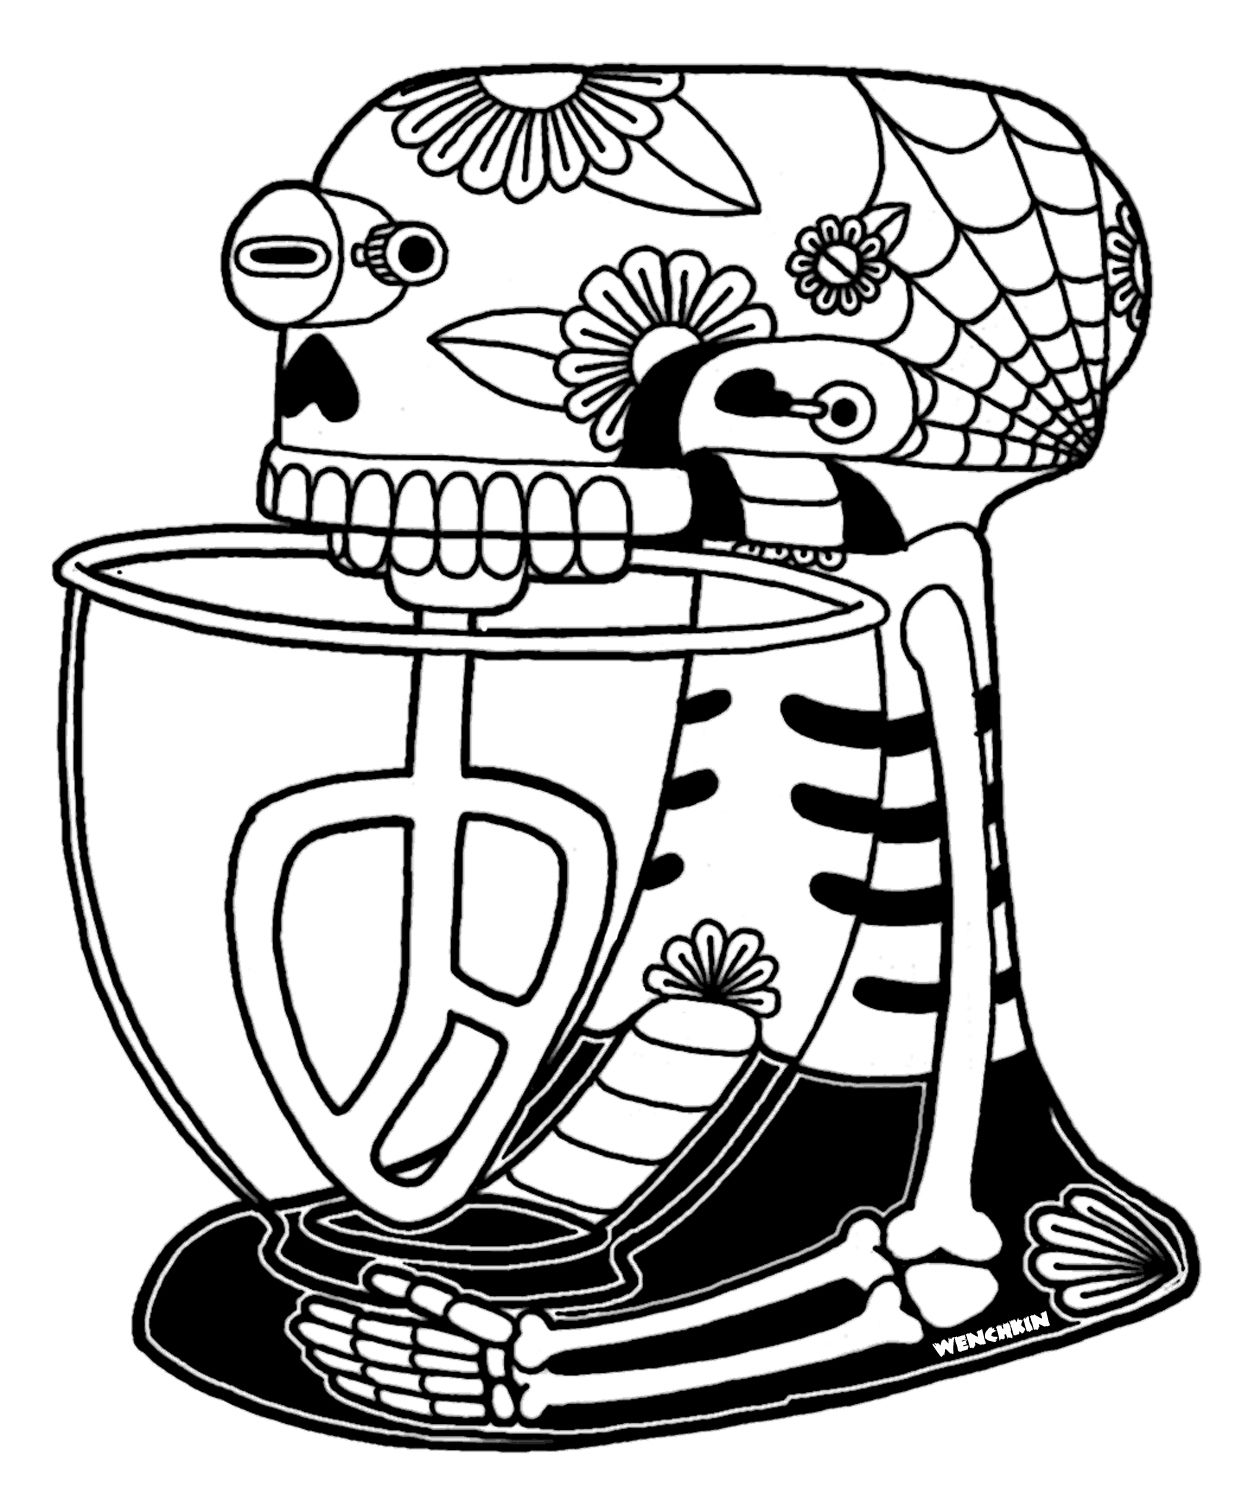 cute sugar skull coloring pages yucca flats nm wenchkin39s coloring pages mixer day pages sugar skull coloring cute